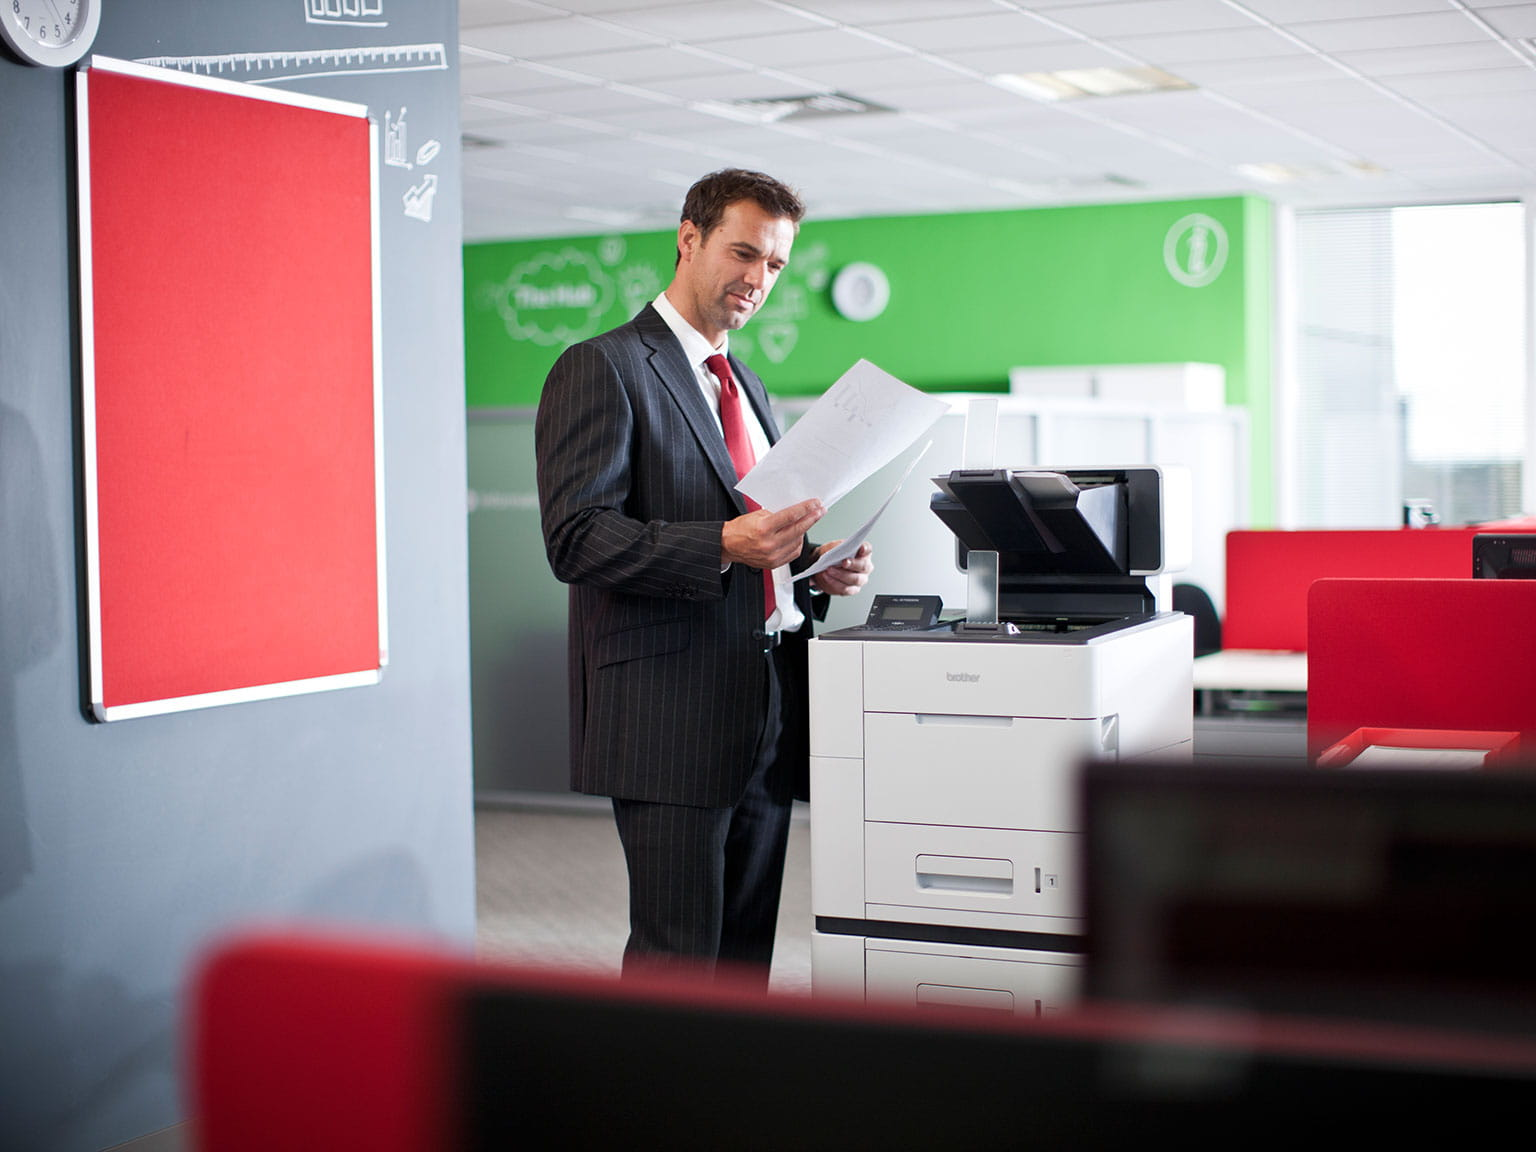 Businessman holding papers in front of a Brother computer